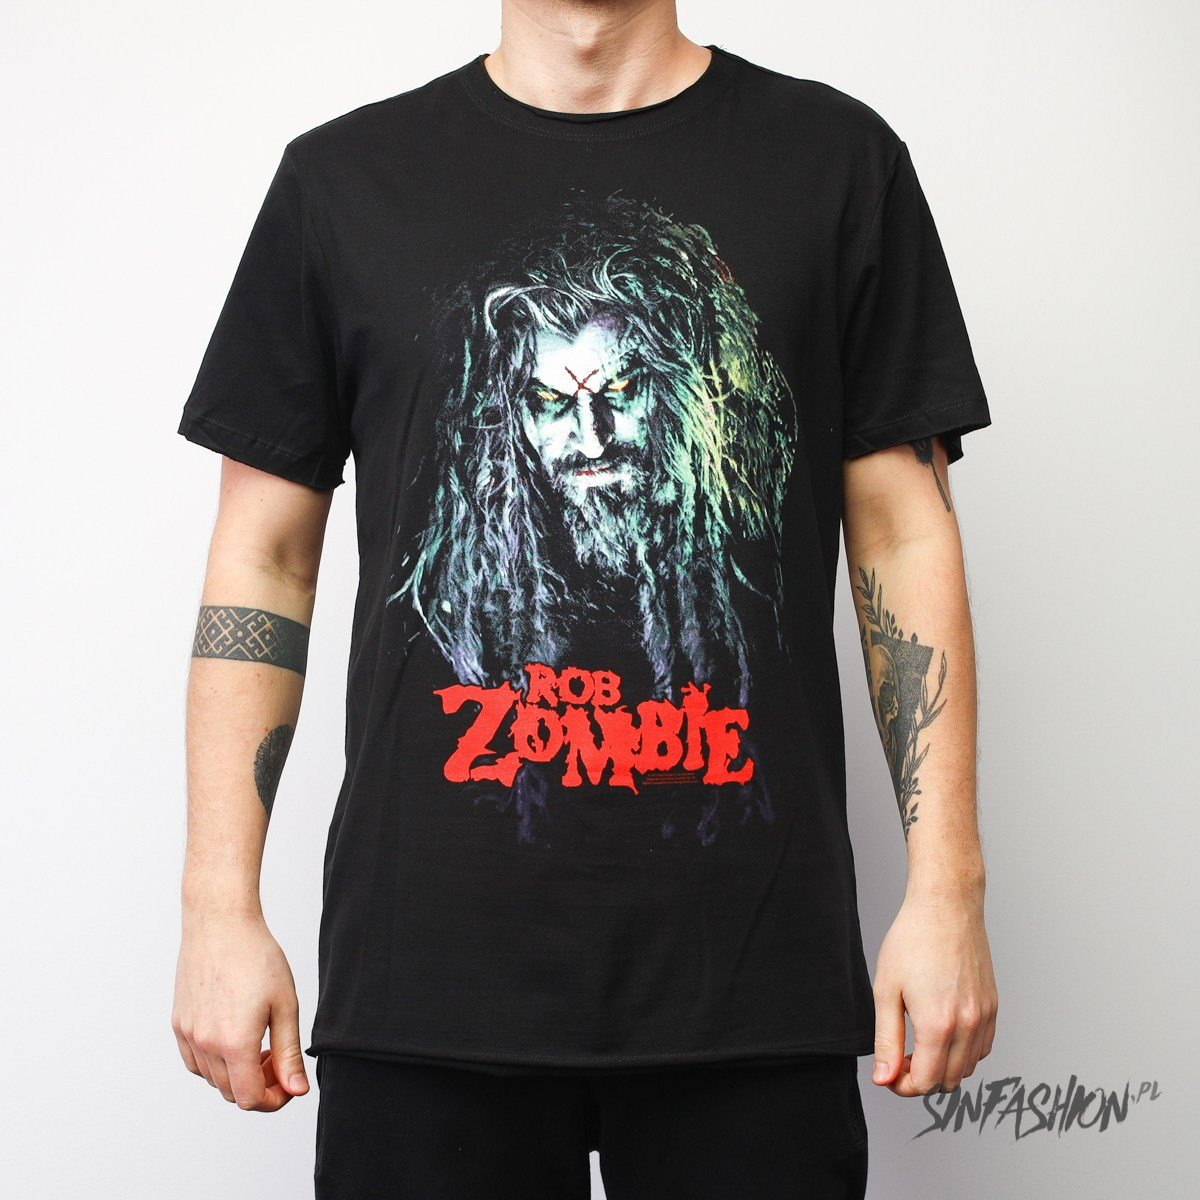 Koszulka Amplified Rob Zombie Dracula